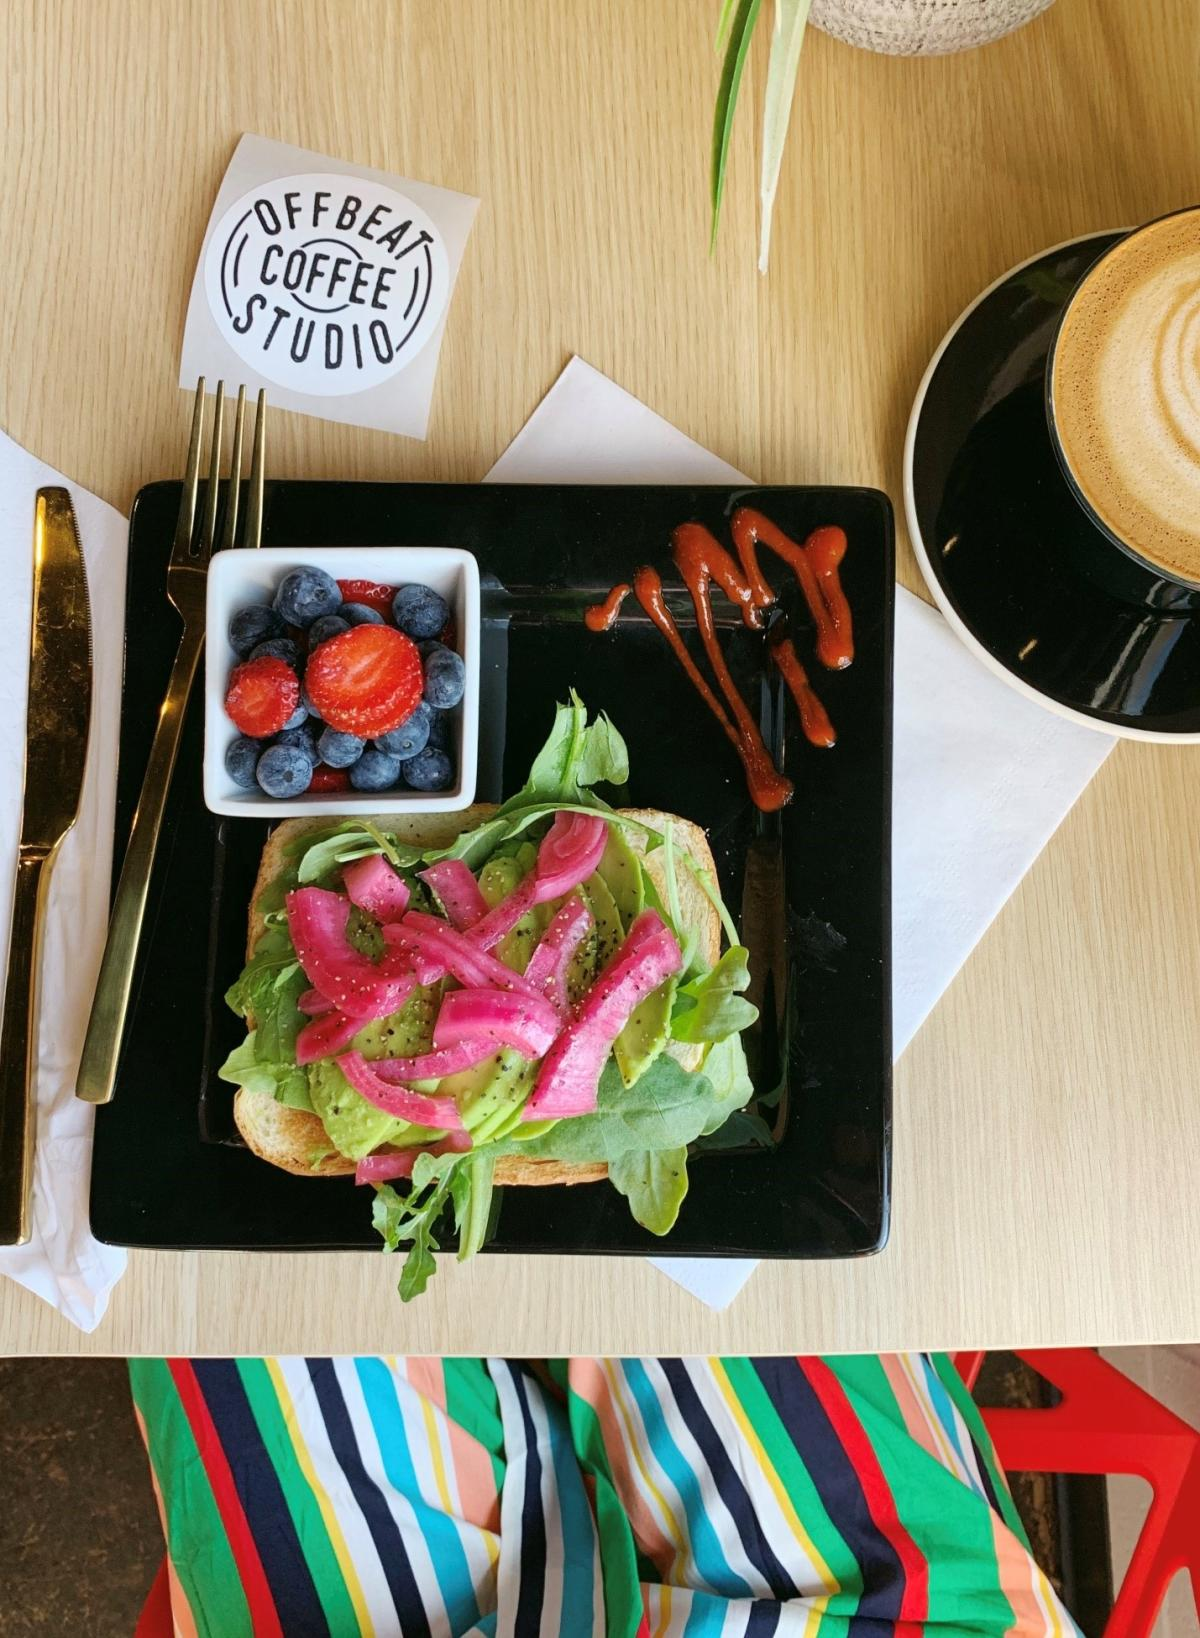 Offbeat Coffee Vegan Breakfast